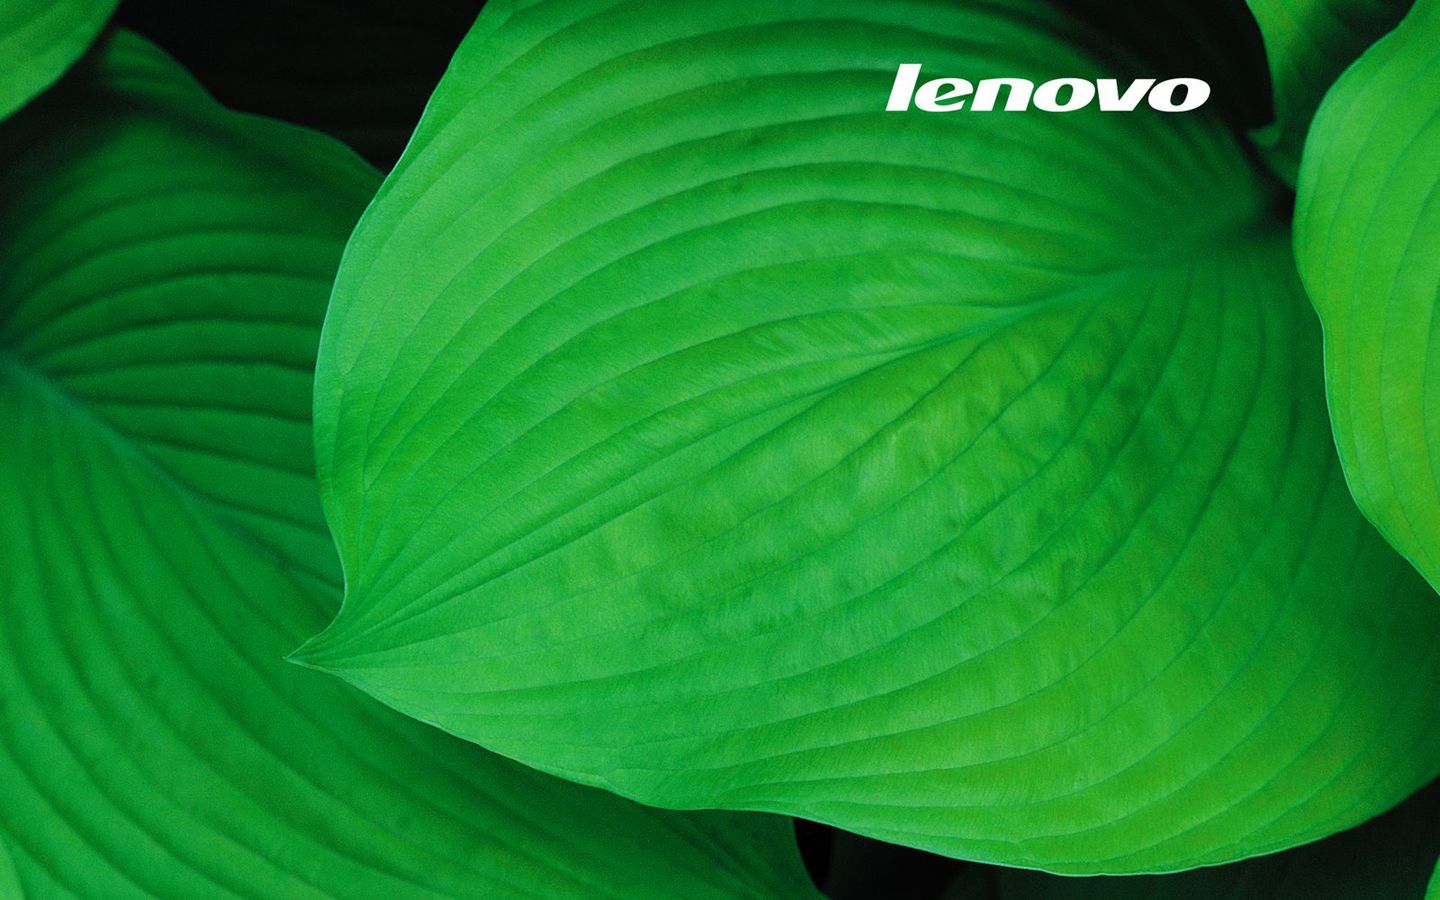 lenovo wallpaper 15 Best Wallpaper